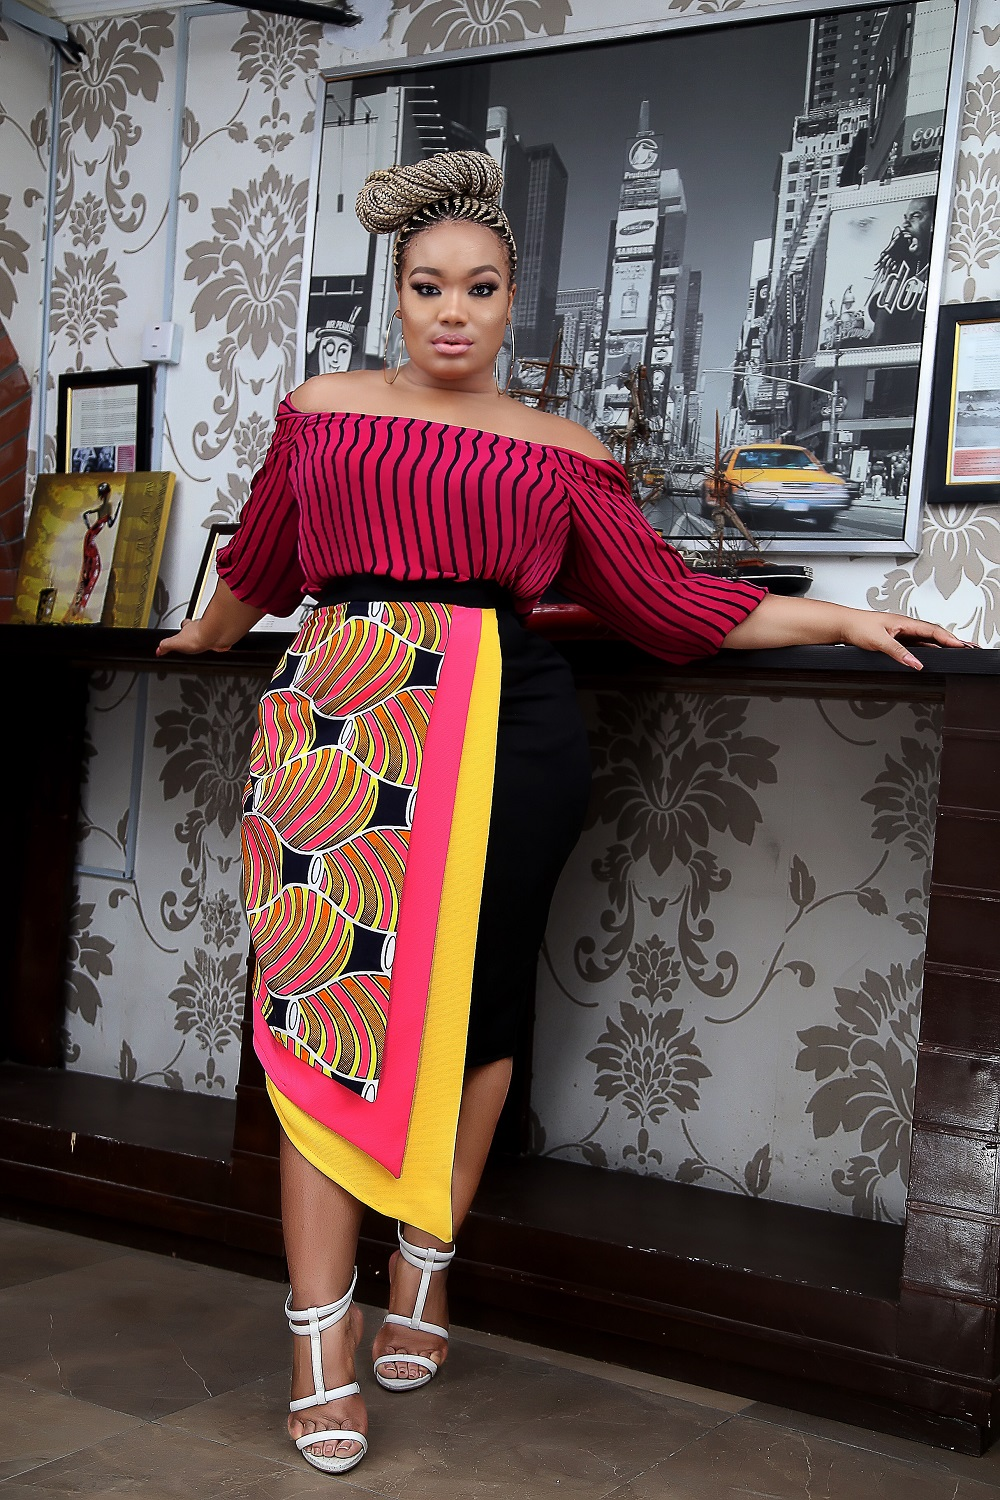 Tajé Prest is the Perfect Muse for SGTC Clothing's Latest Collection